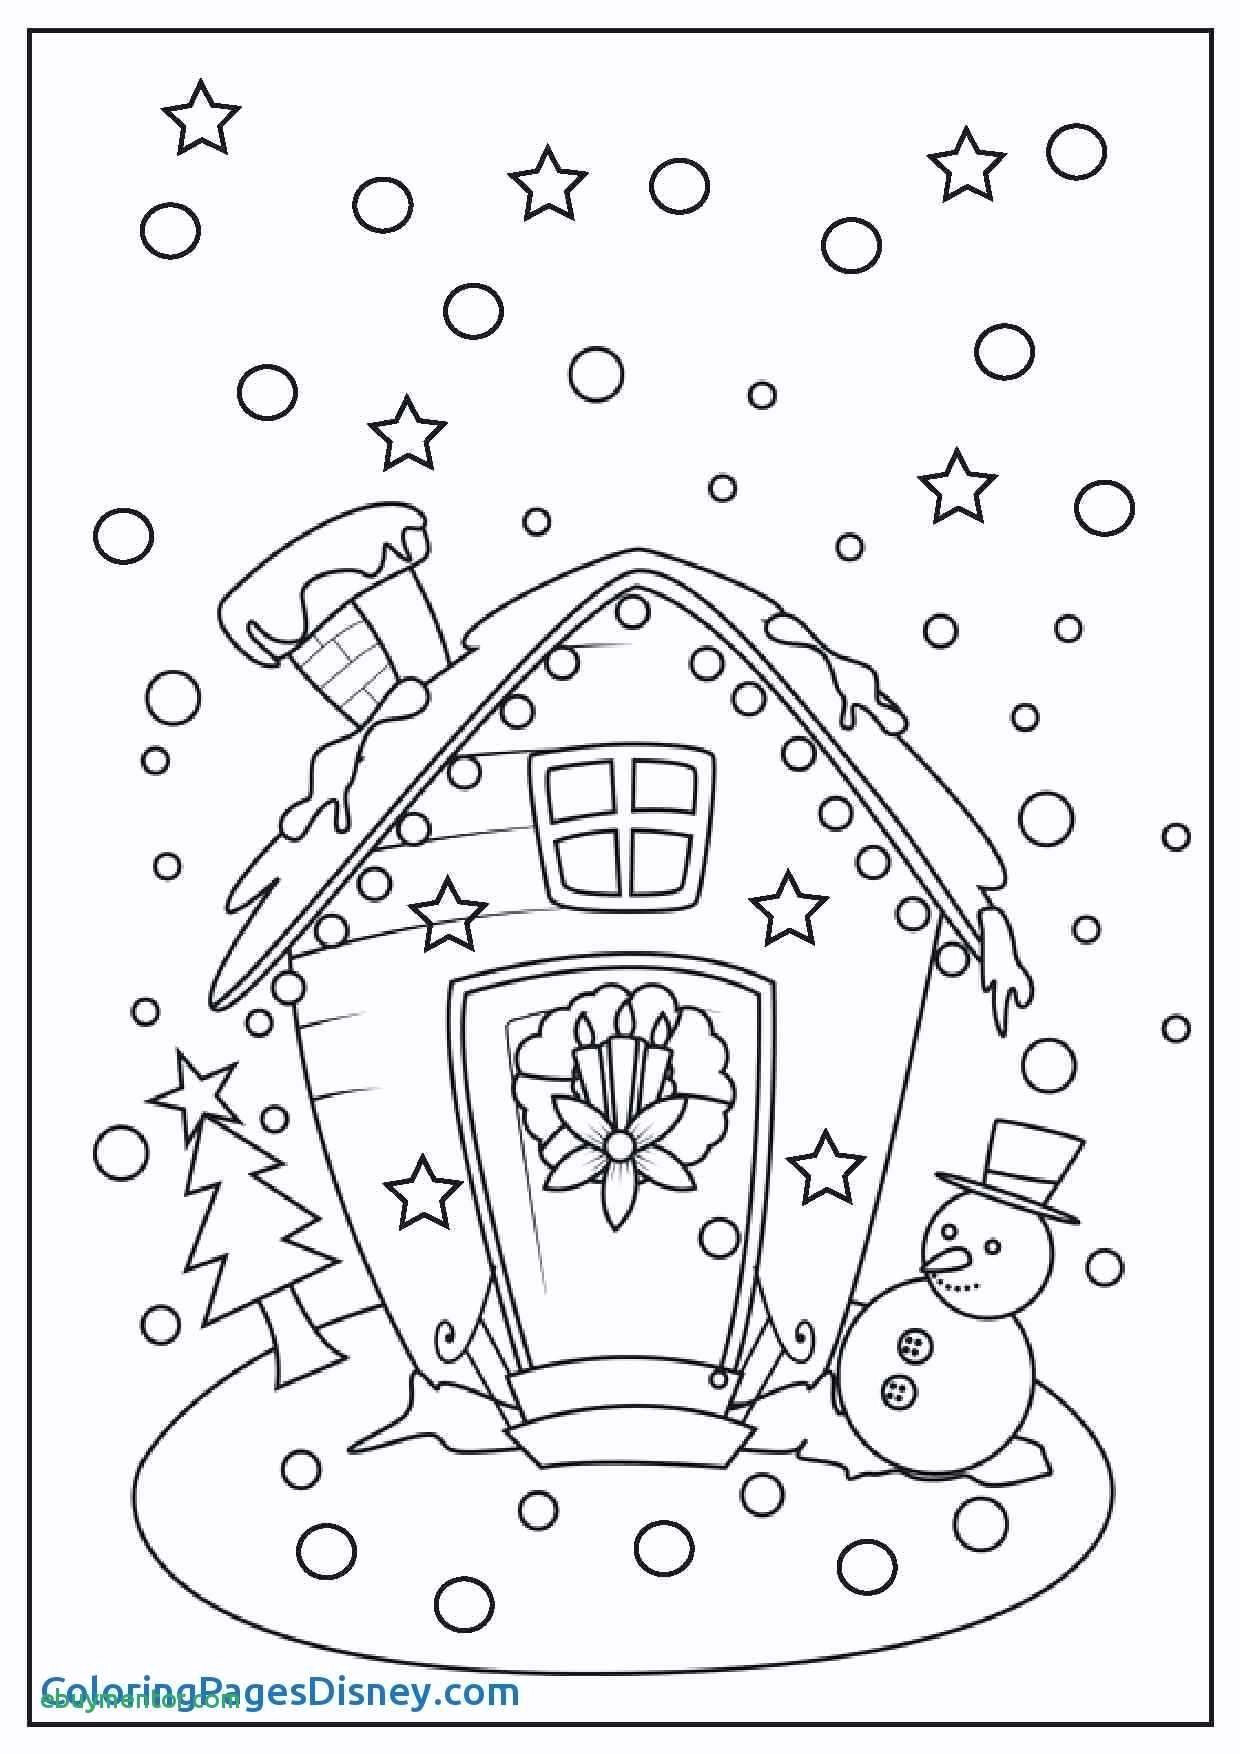 Christmas Coloring Pages Online Printable With Colouring Pictures To Colour Jagadishshettar Com